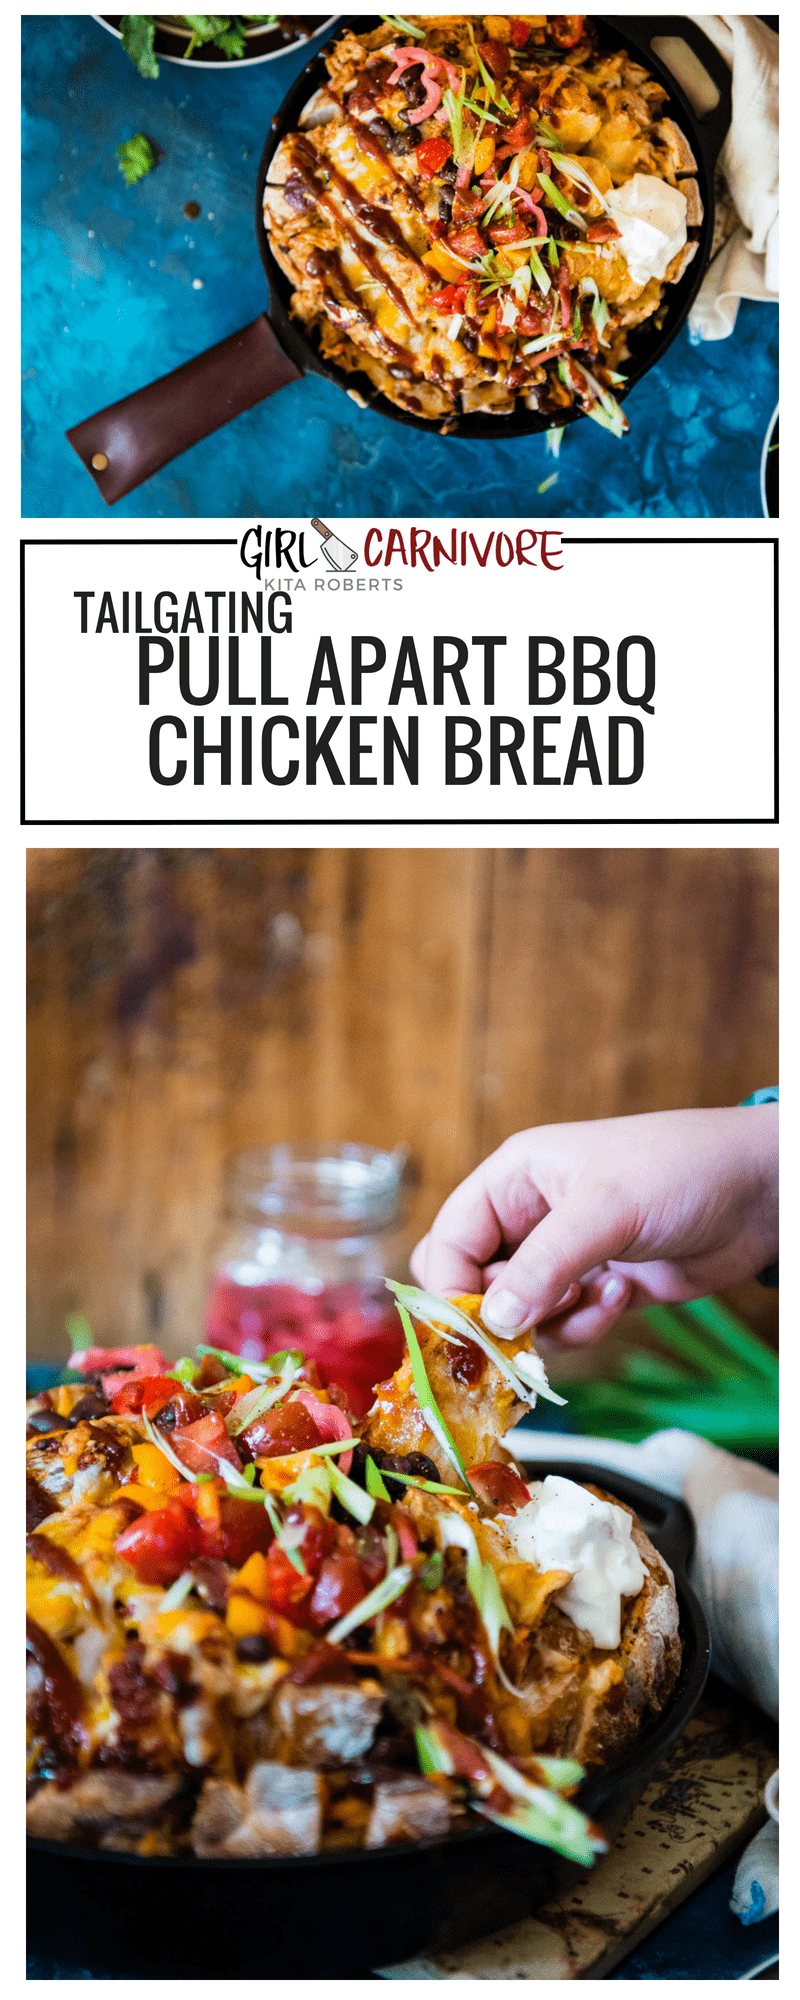 Tailgating Pull-Apart BBQ Chicken Bread Recipe on GirlCarnivore.com